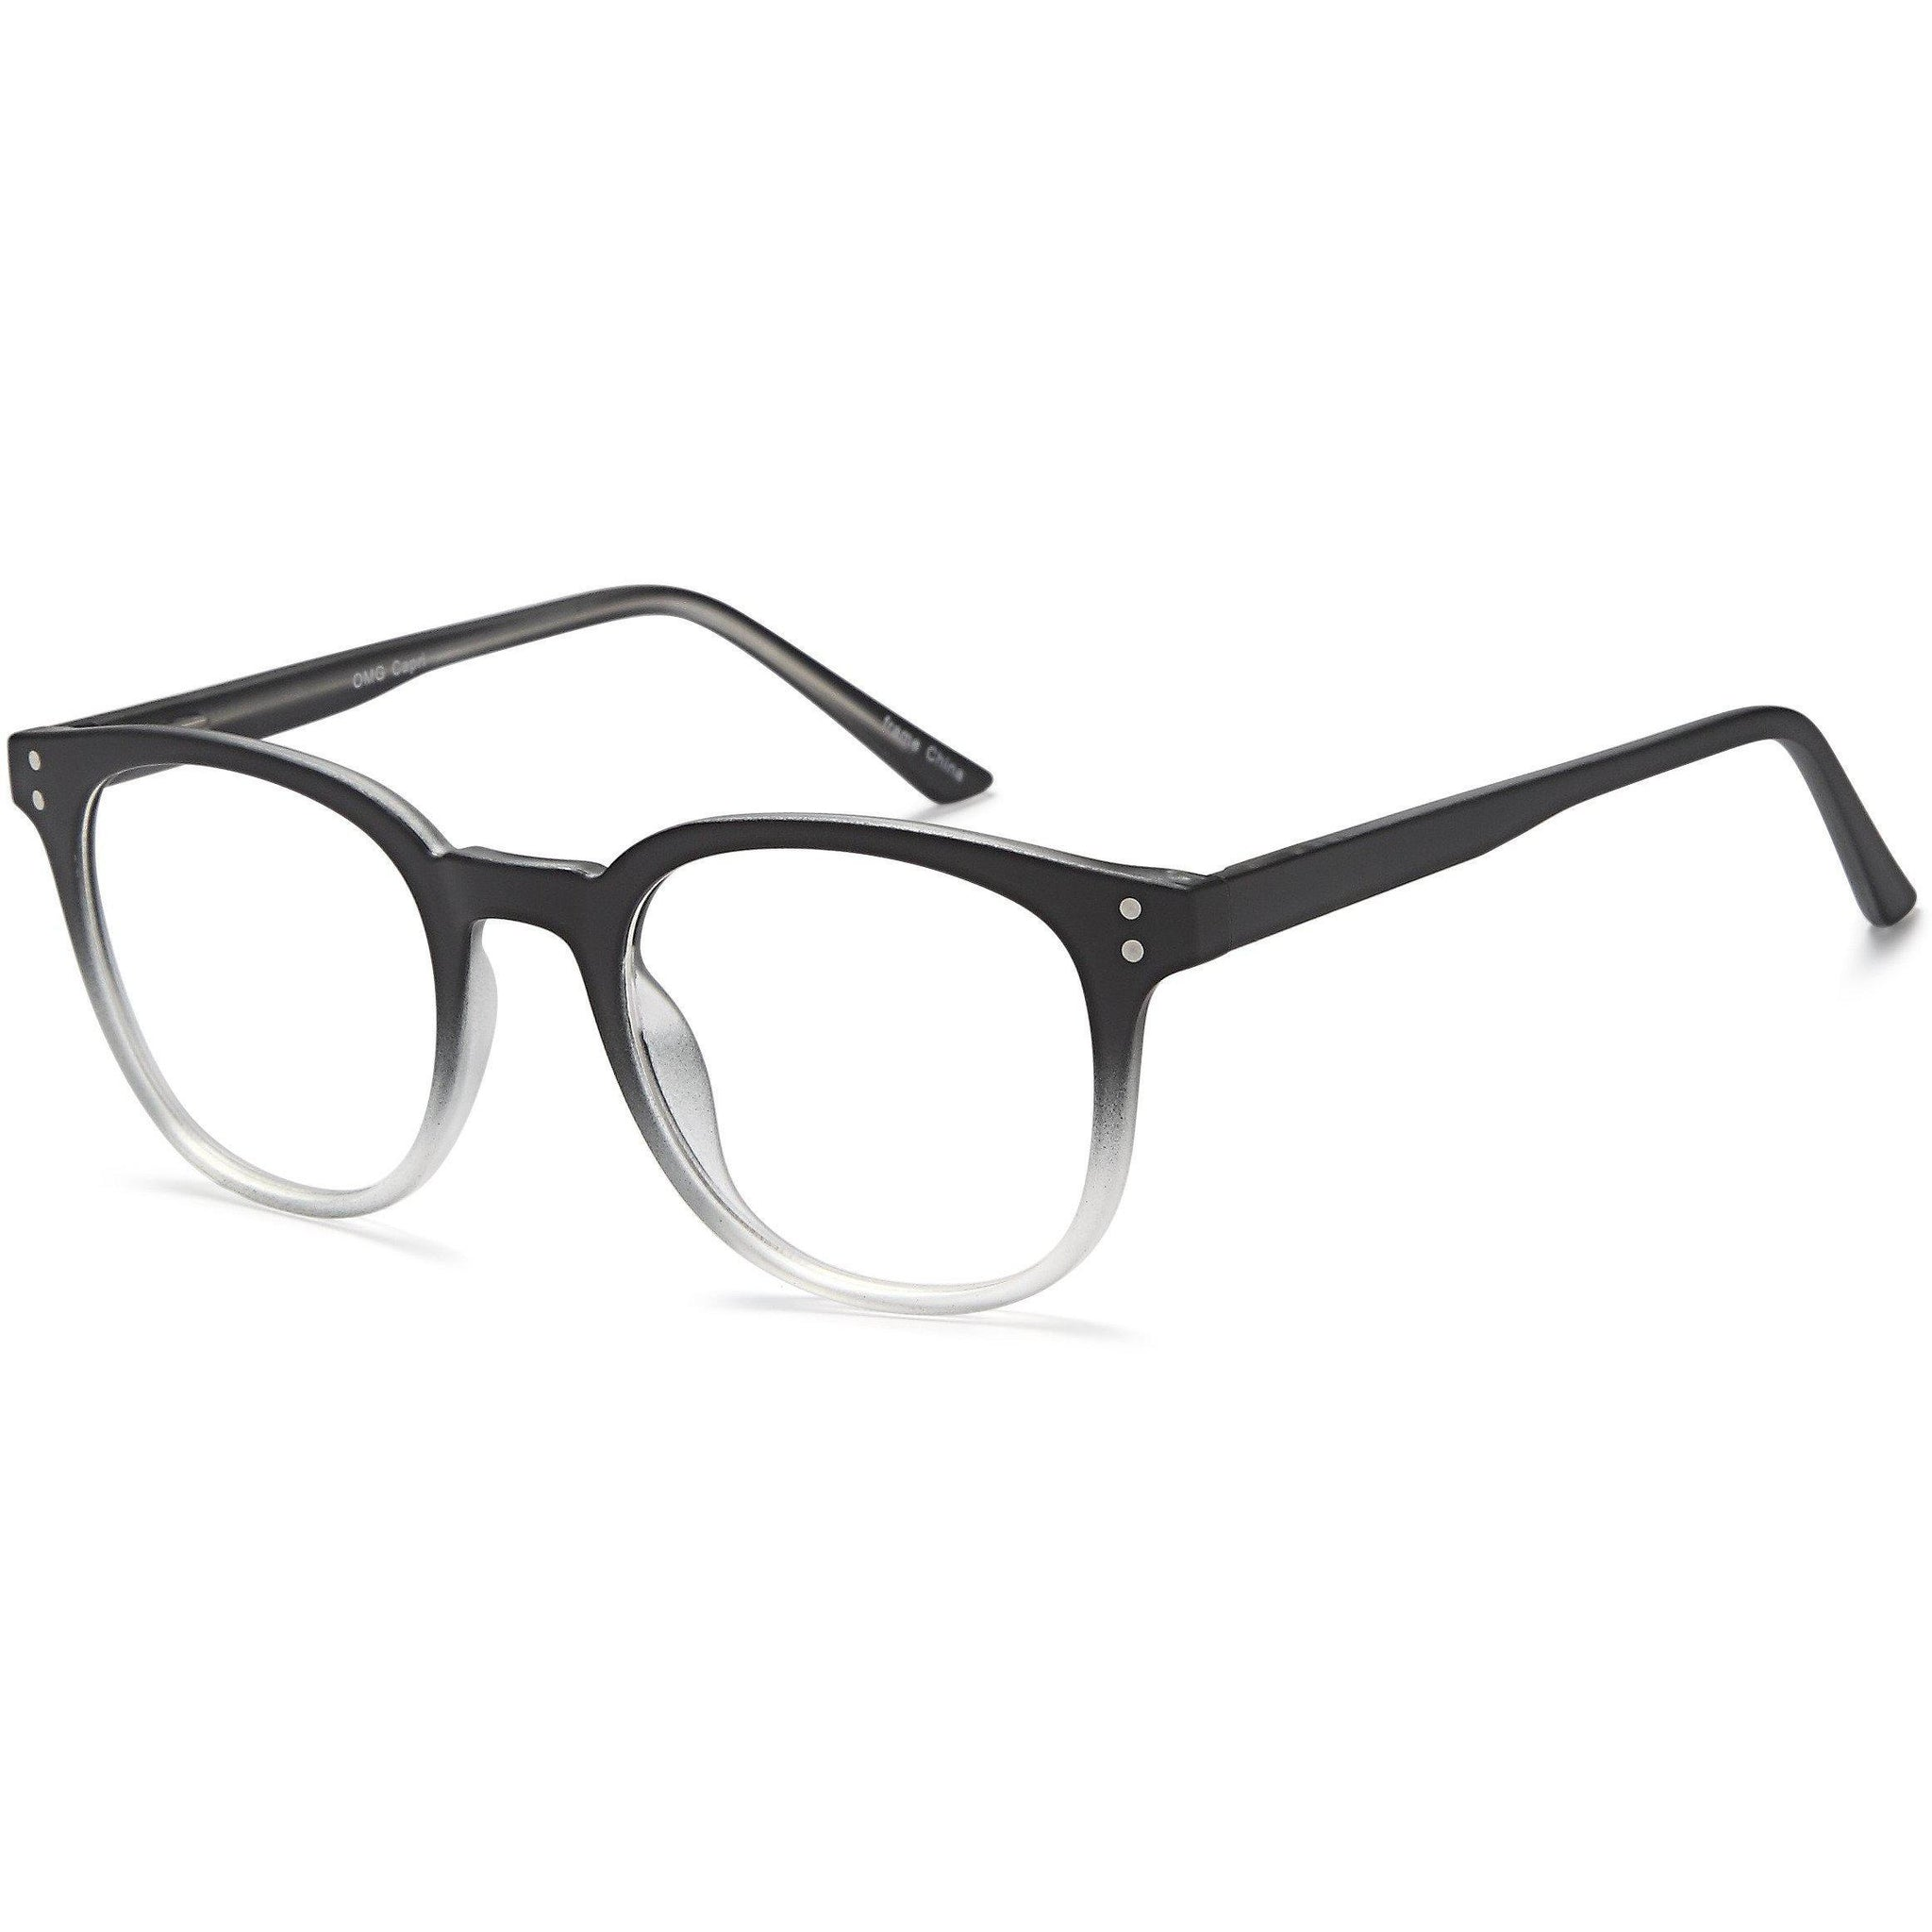 GEN Y Prescription Glasses OMG Eyeglasses Frame